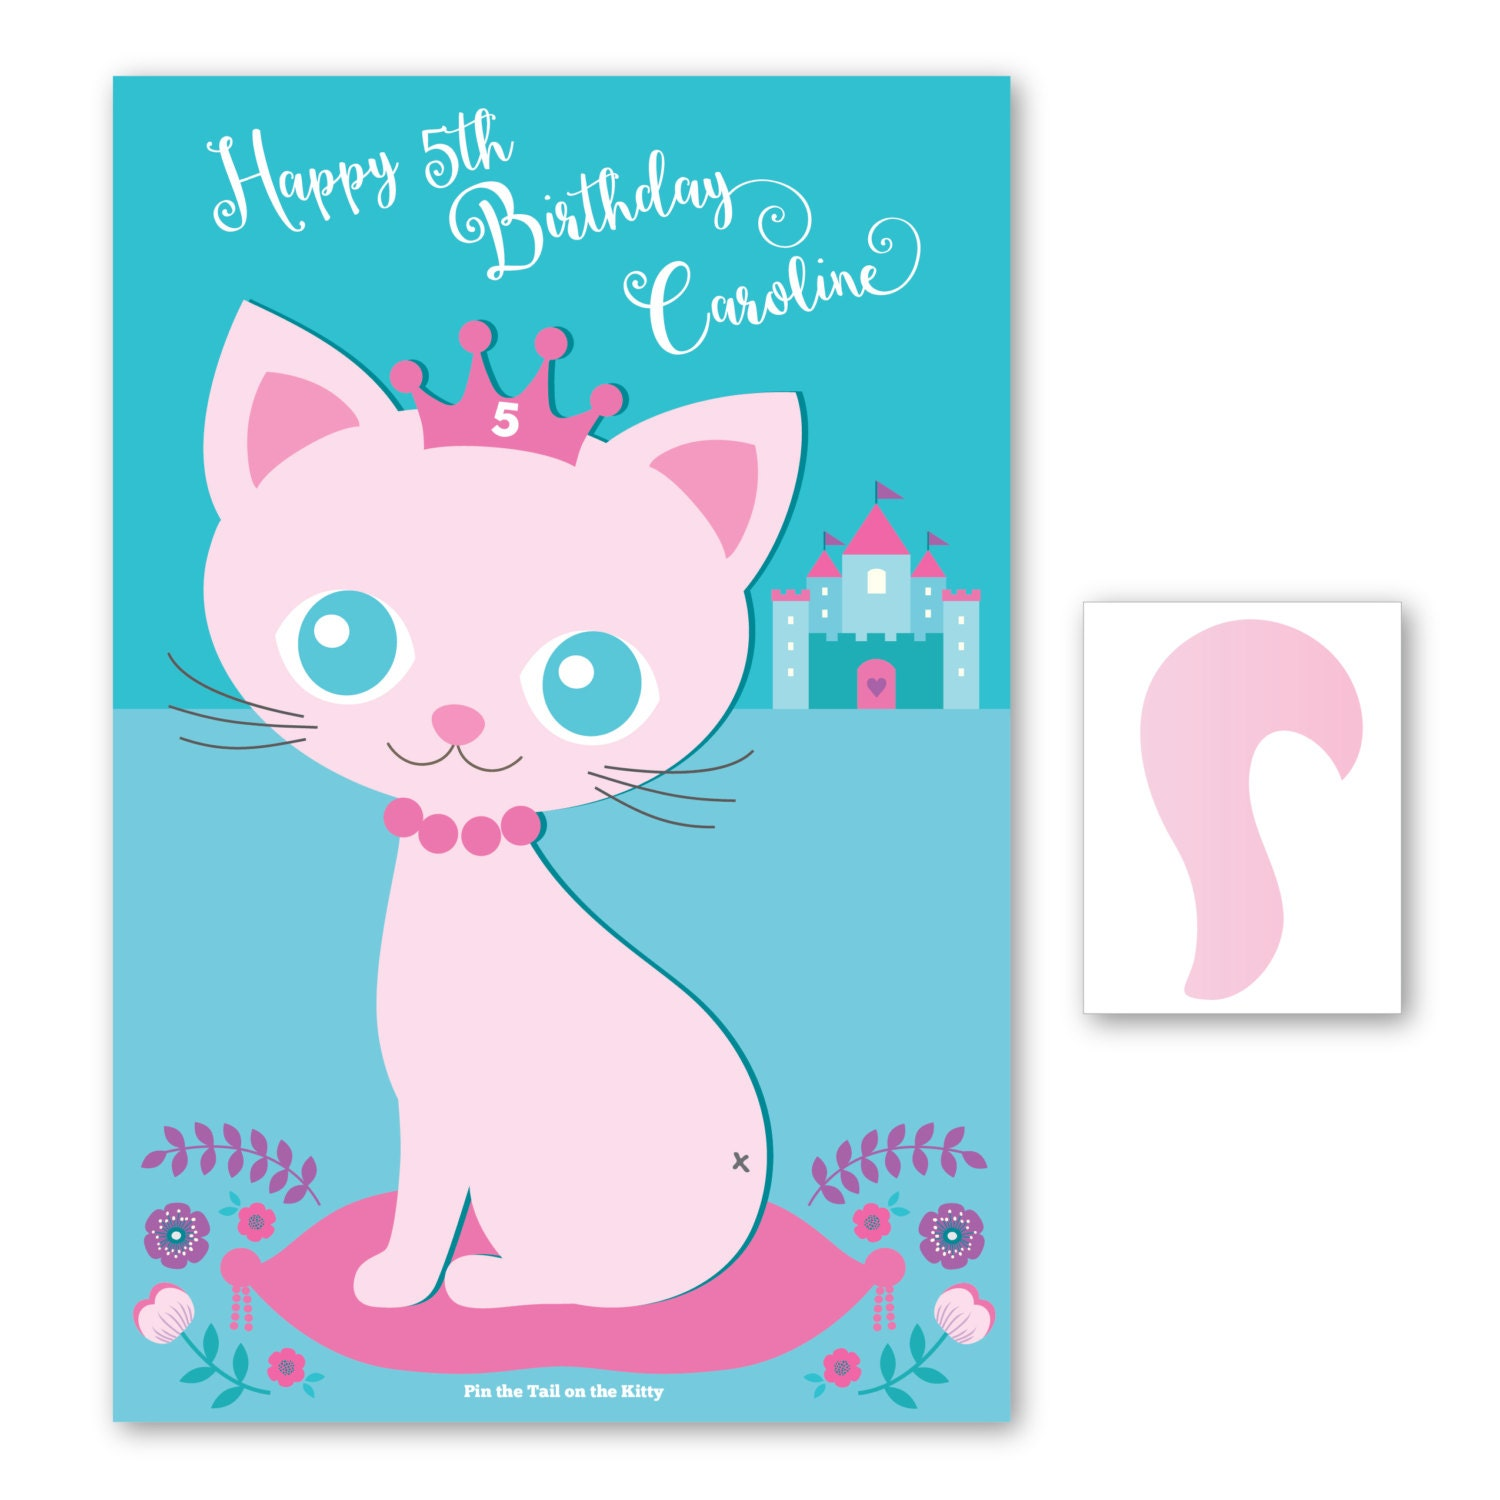 Birthday Party Games Are Hilarious For 8 9 10 11 And 12: Pin The Tail On The Kitty / Cat- Party Game